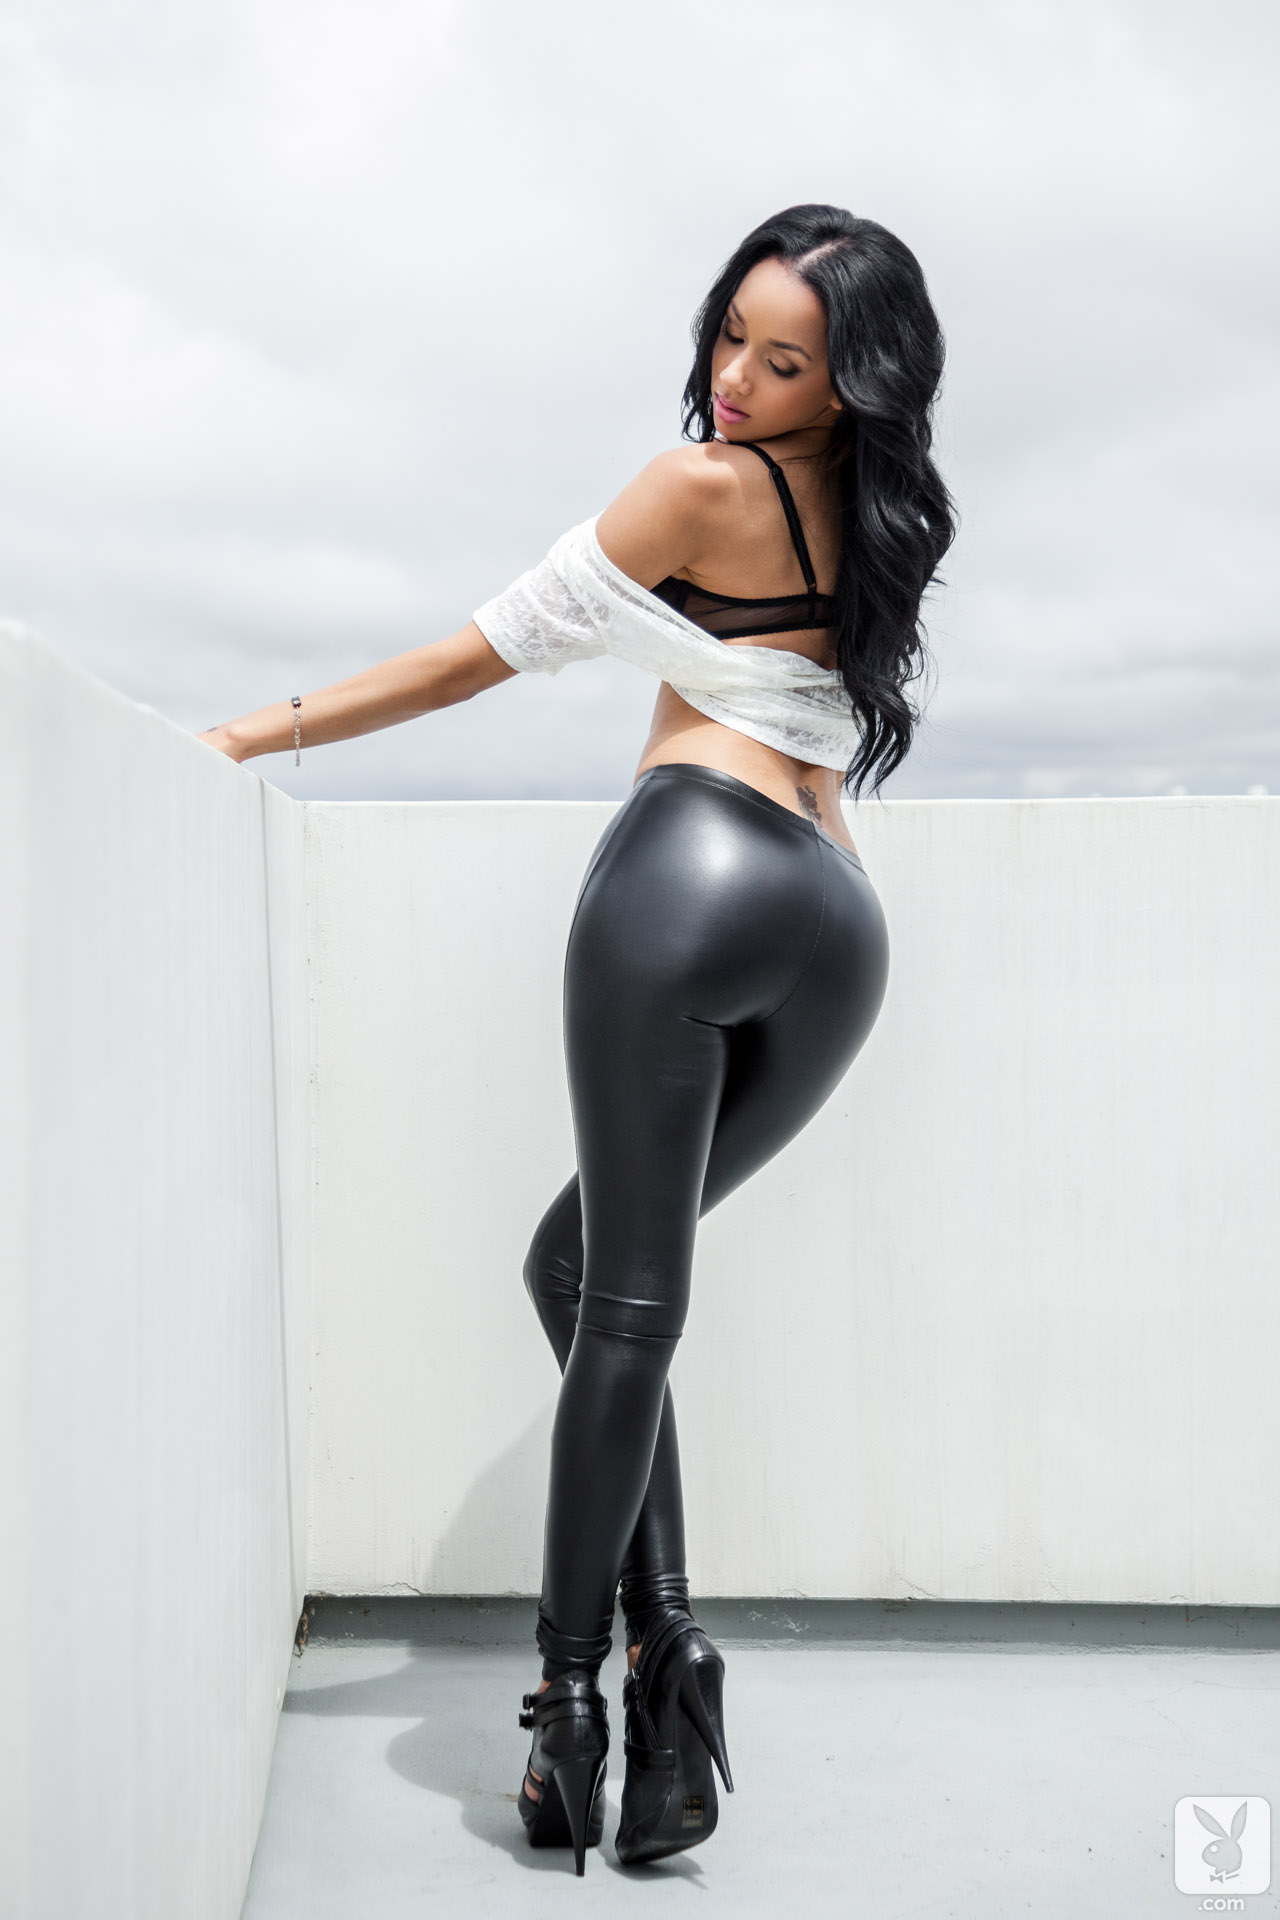 Porn big tits leather pants sexy xnxx